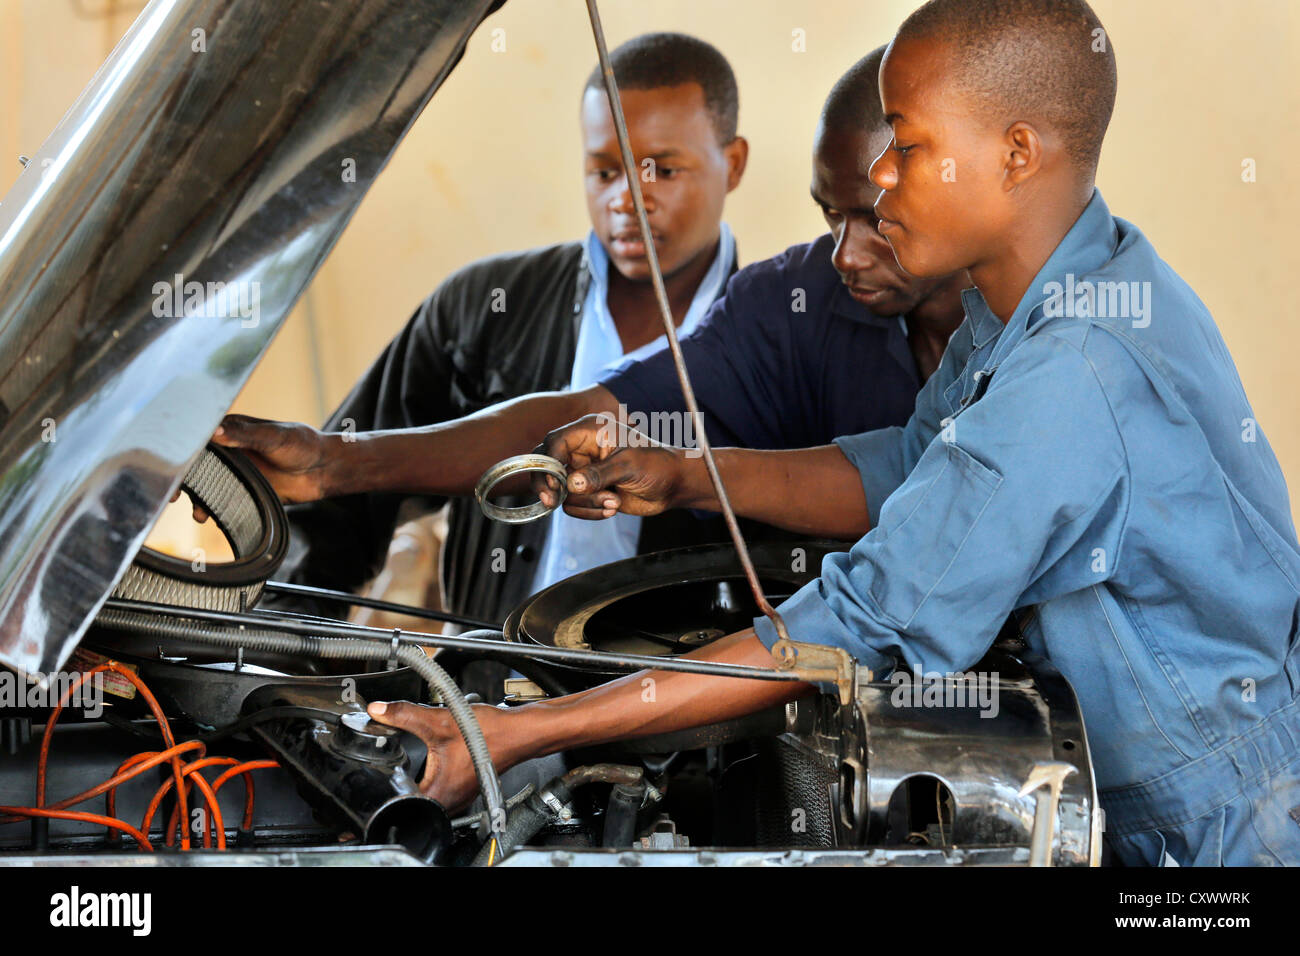 young mechanics works on a car engine. Machui Vocational Center, Machui, Zanzibar, Tanzania - Stock Image